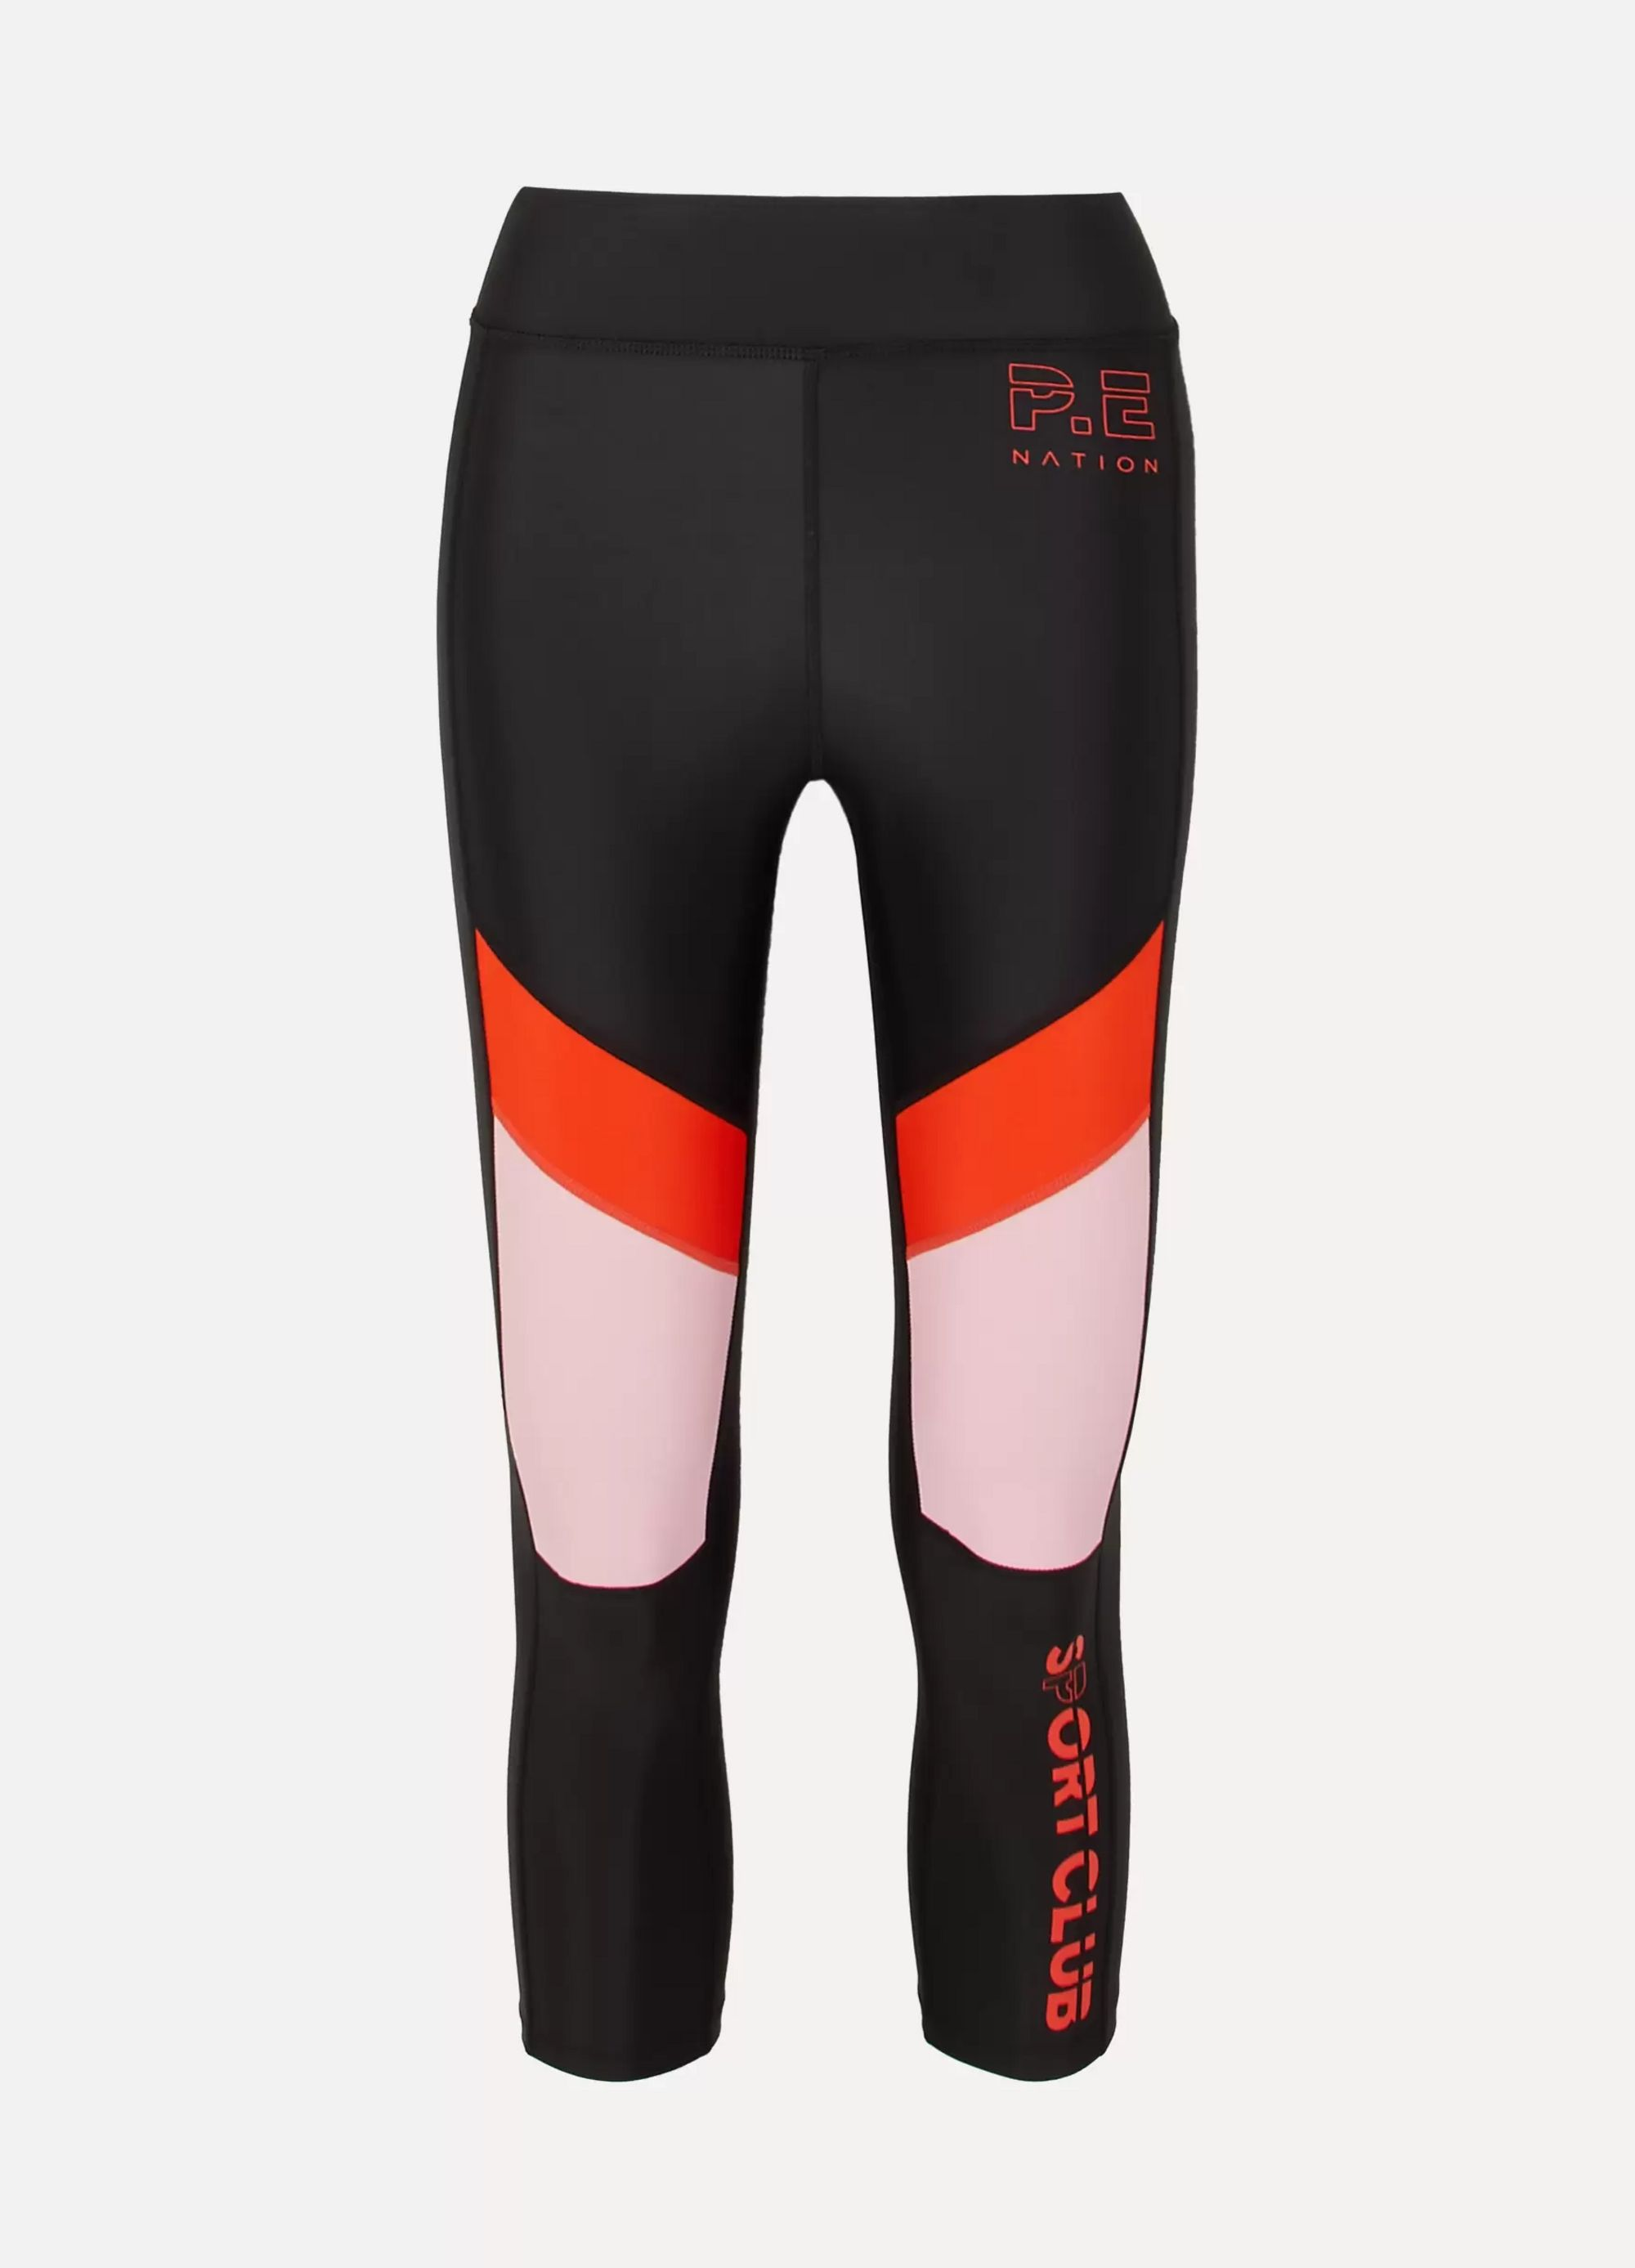 P.E NATION First Innings paneled stretch leggings